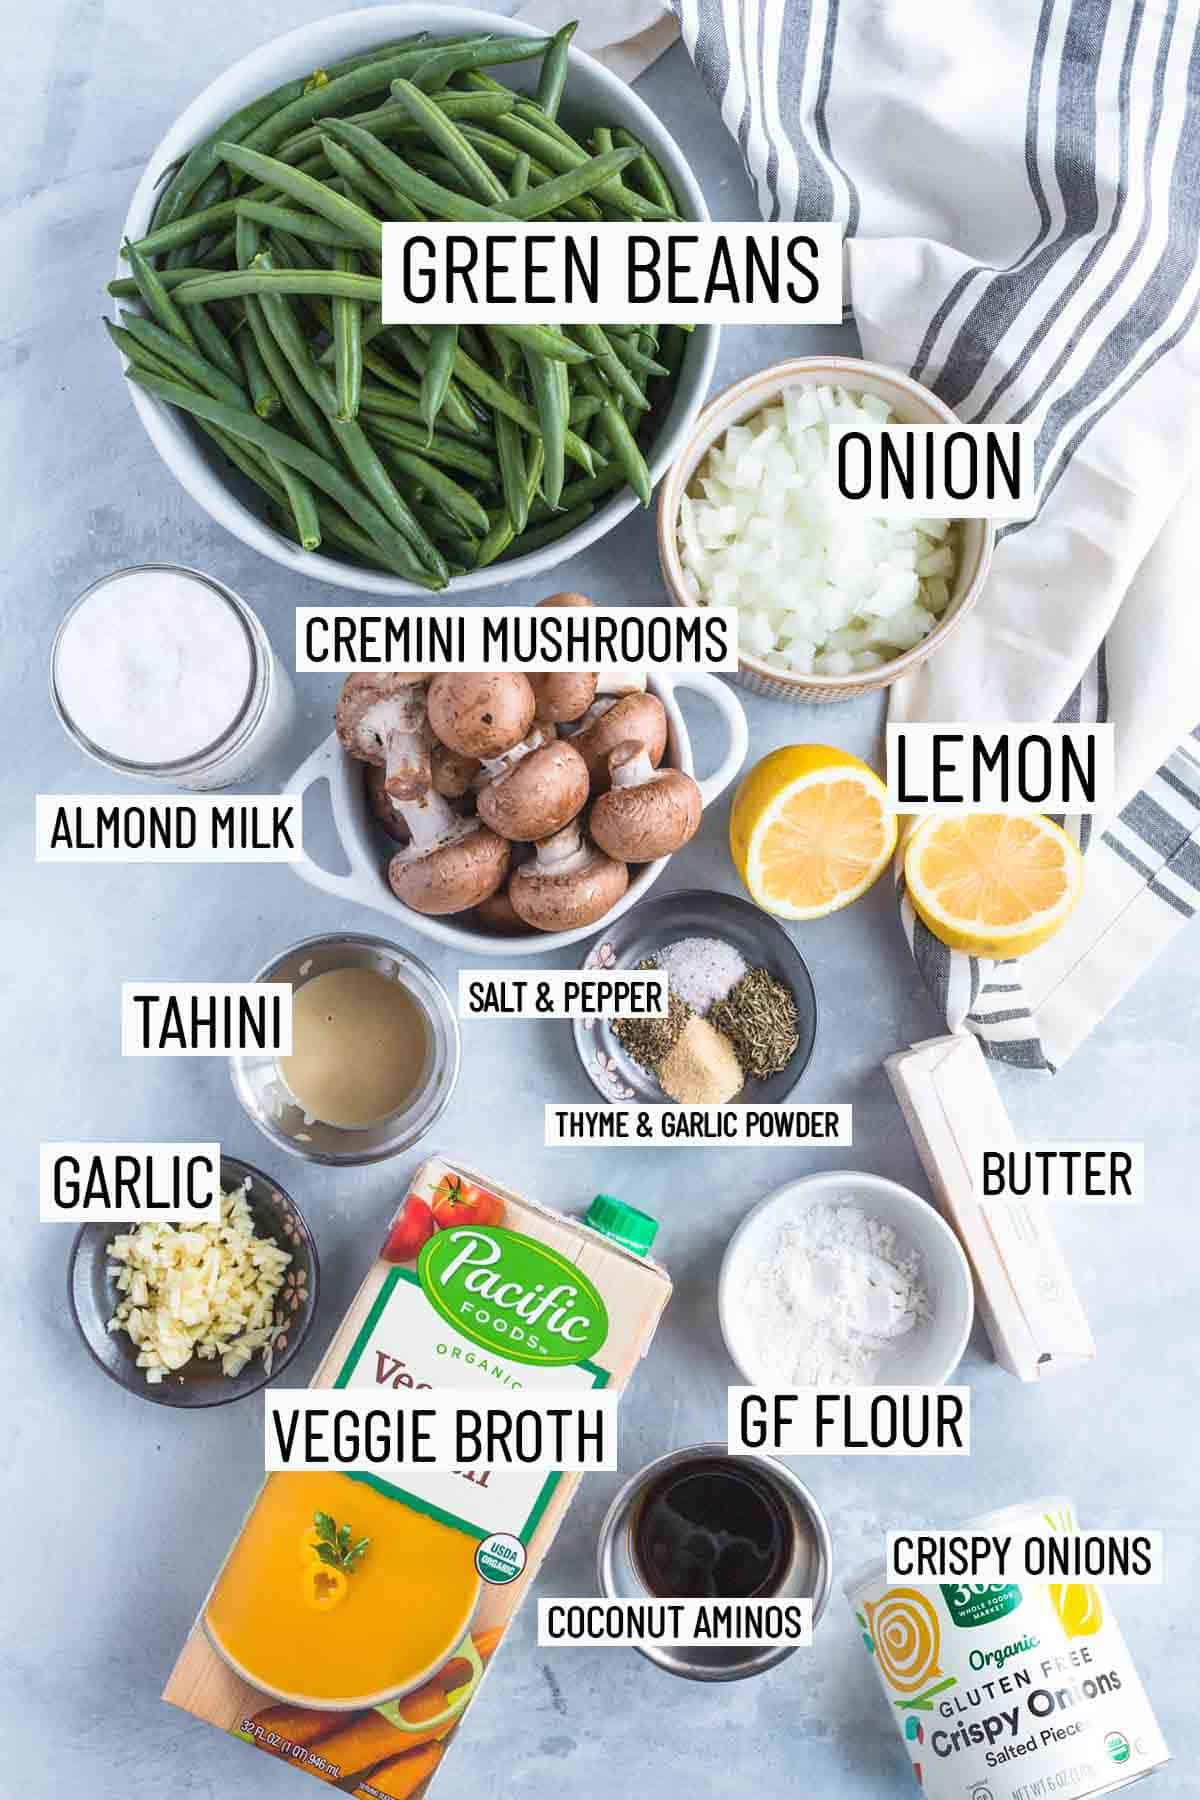 Flat lay image of portioned recipe ingredients including onion, lemon, mushroom, almond milk, green beans, tahini, spices, butter, flour, veggie broth, garlic, coconut aminos, and crispy onions.